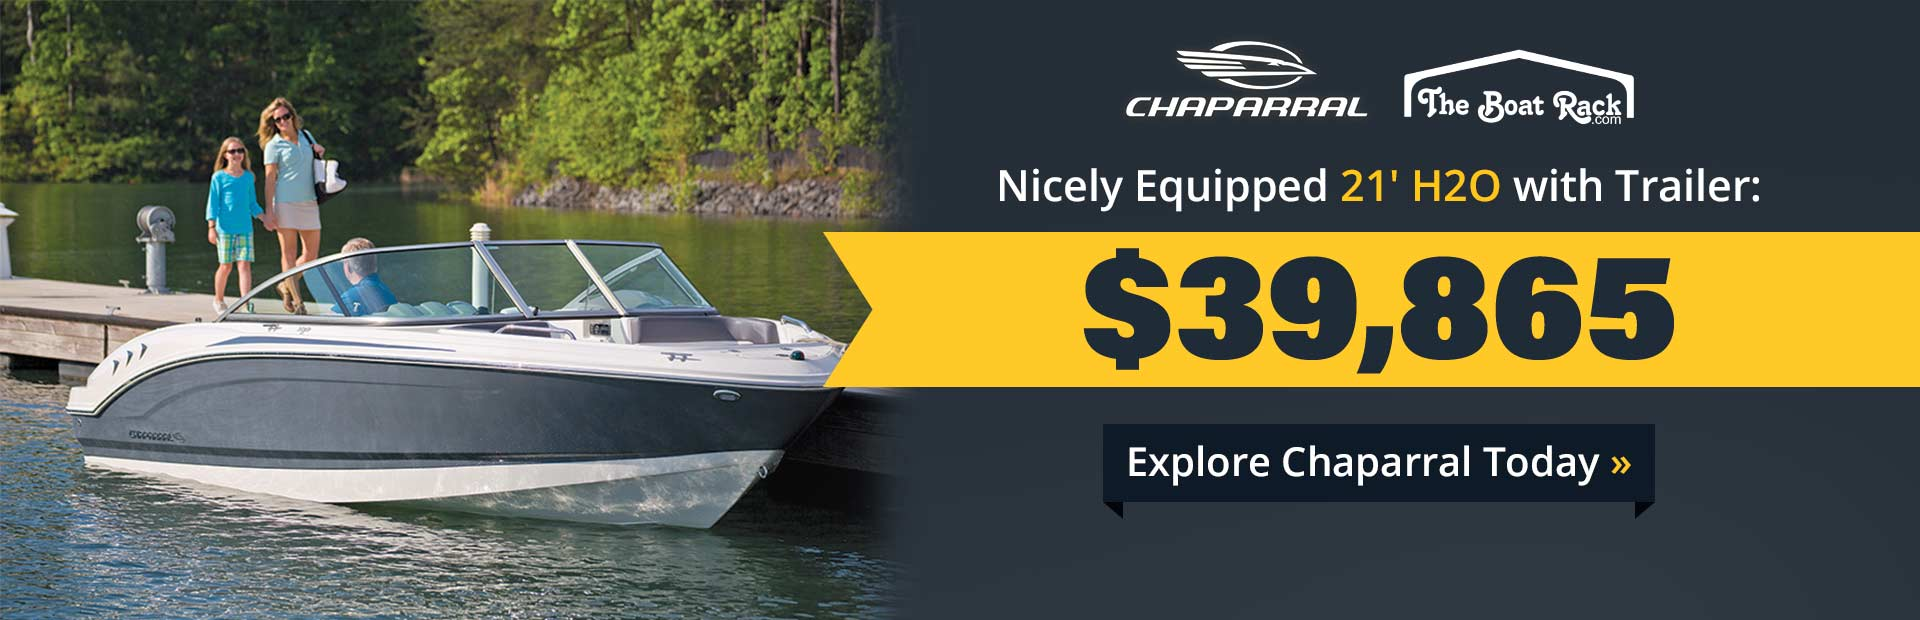 Explore Chaparral today, including a nicely equipped 21' H2O with trailer!